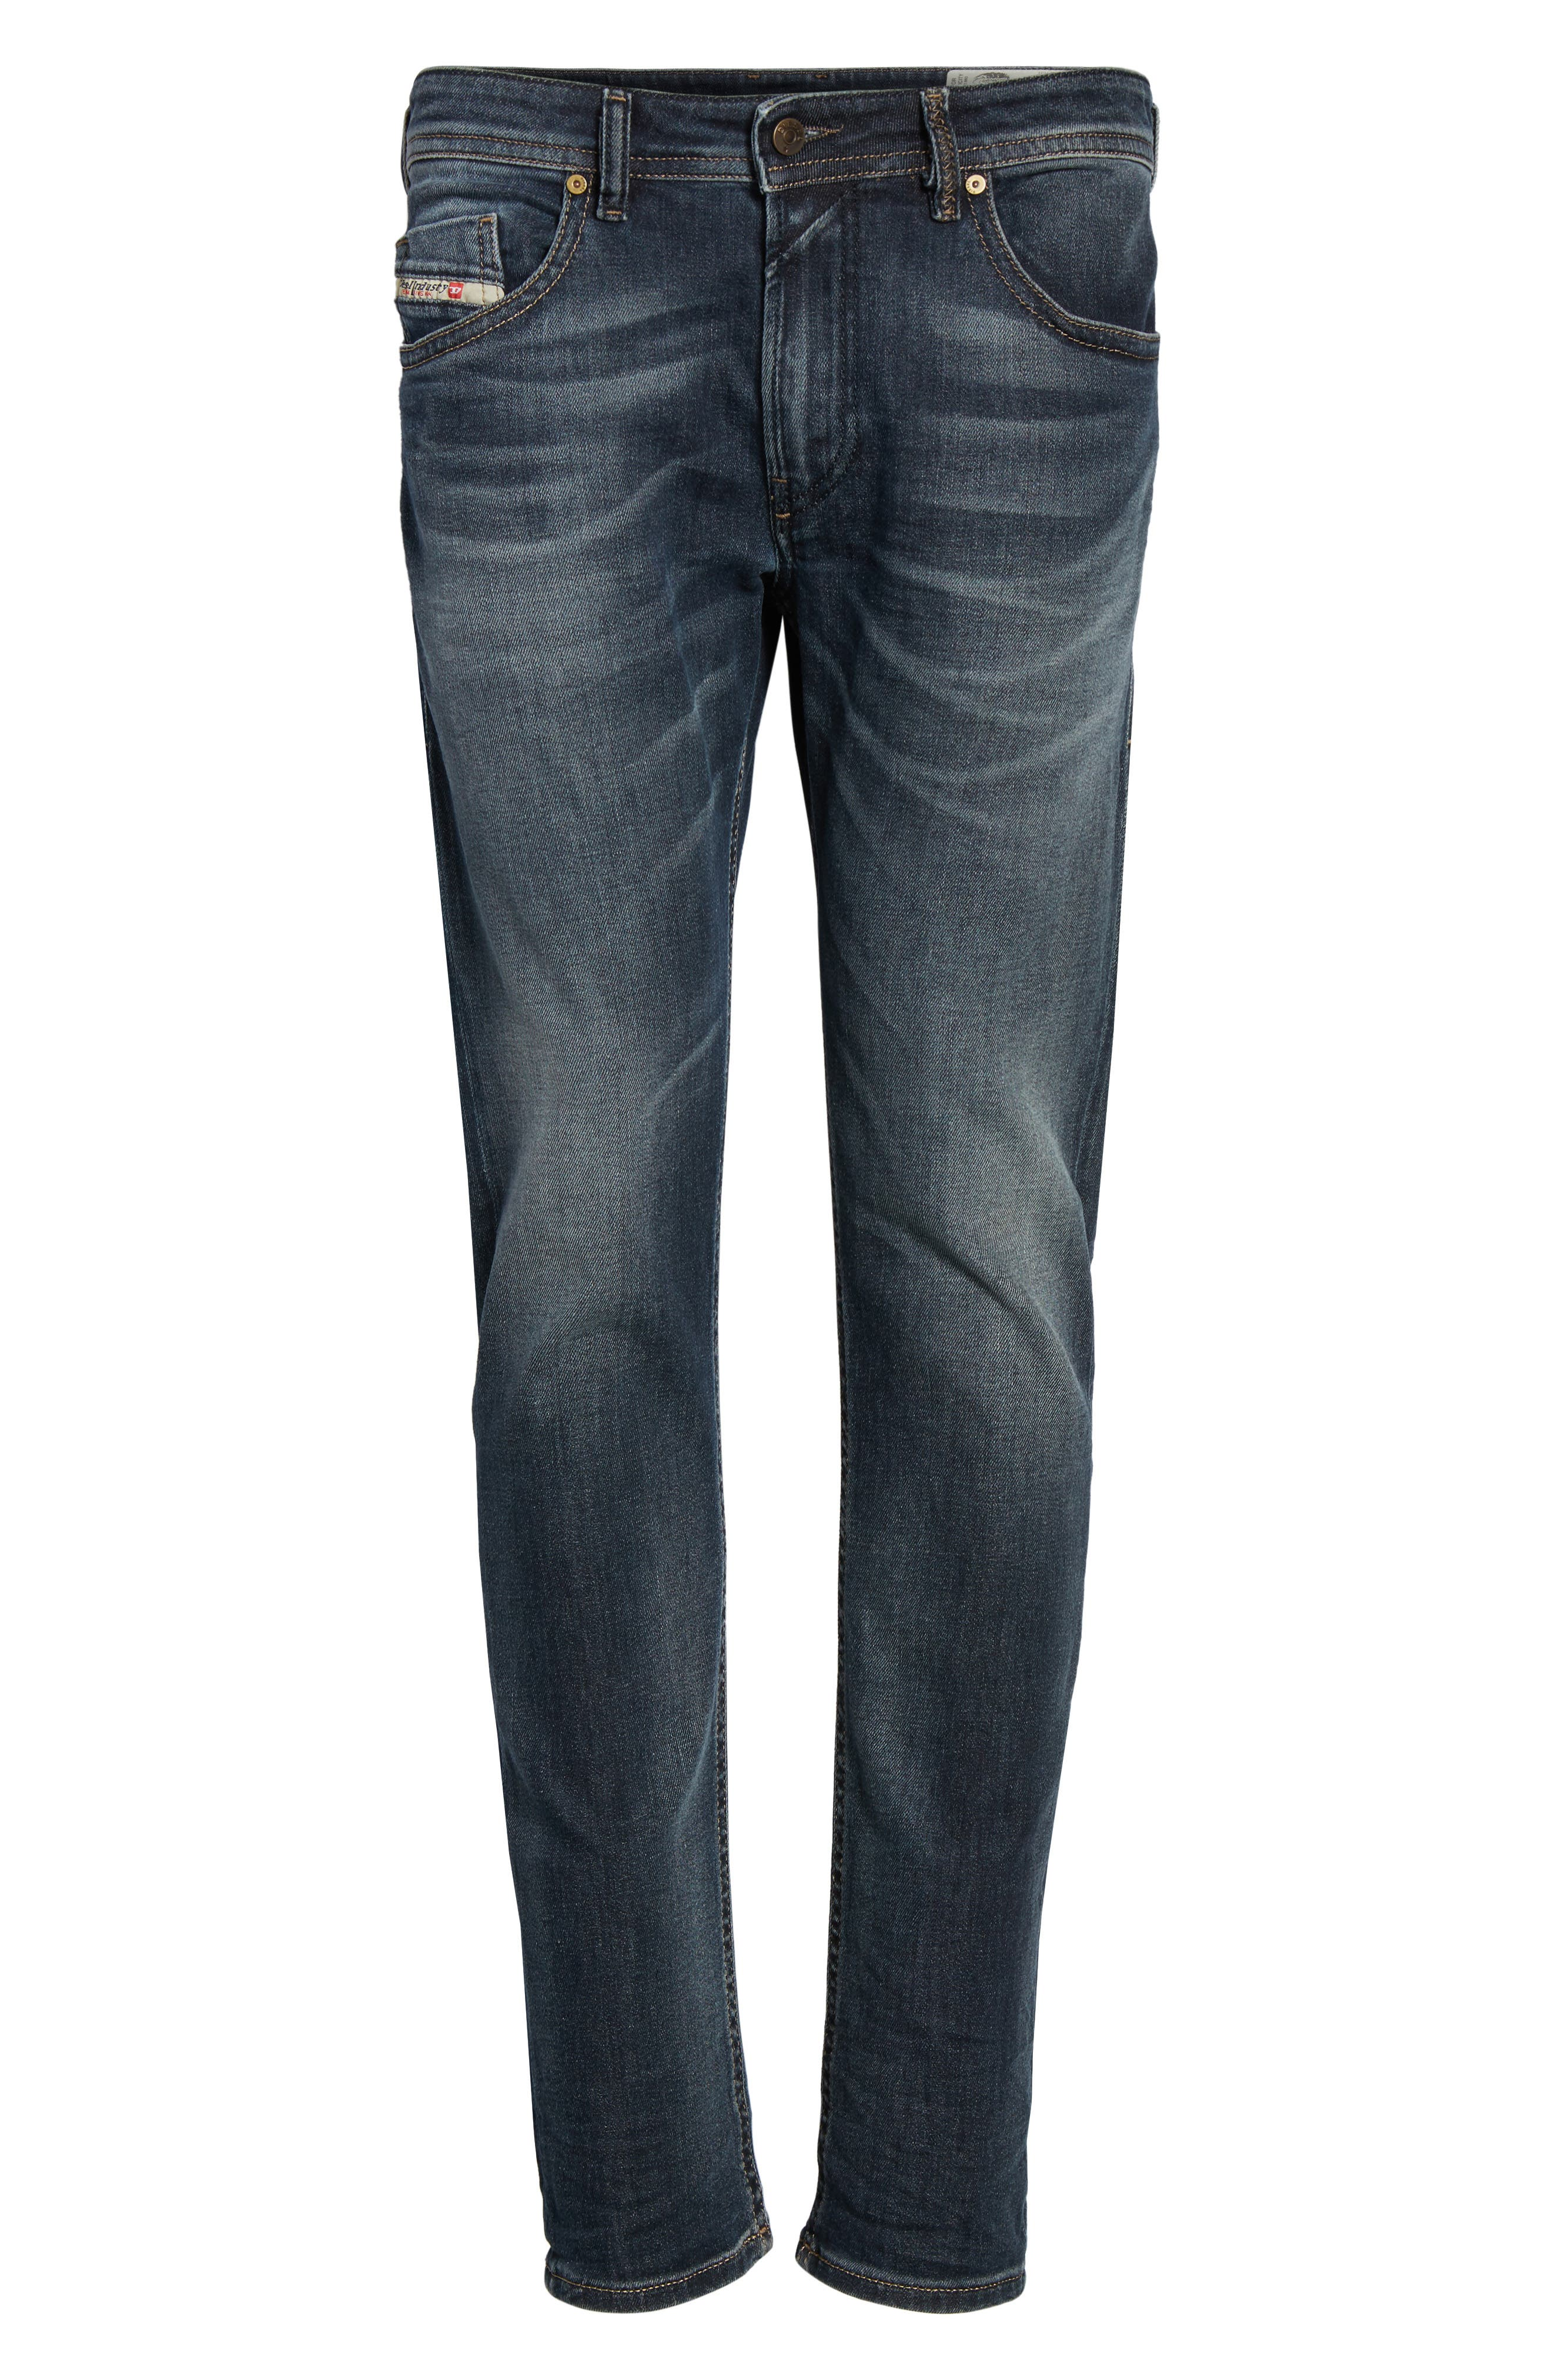 Thommer Slim Fit Jeans,                             Alternate thumbnail 6, color,                             400